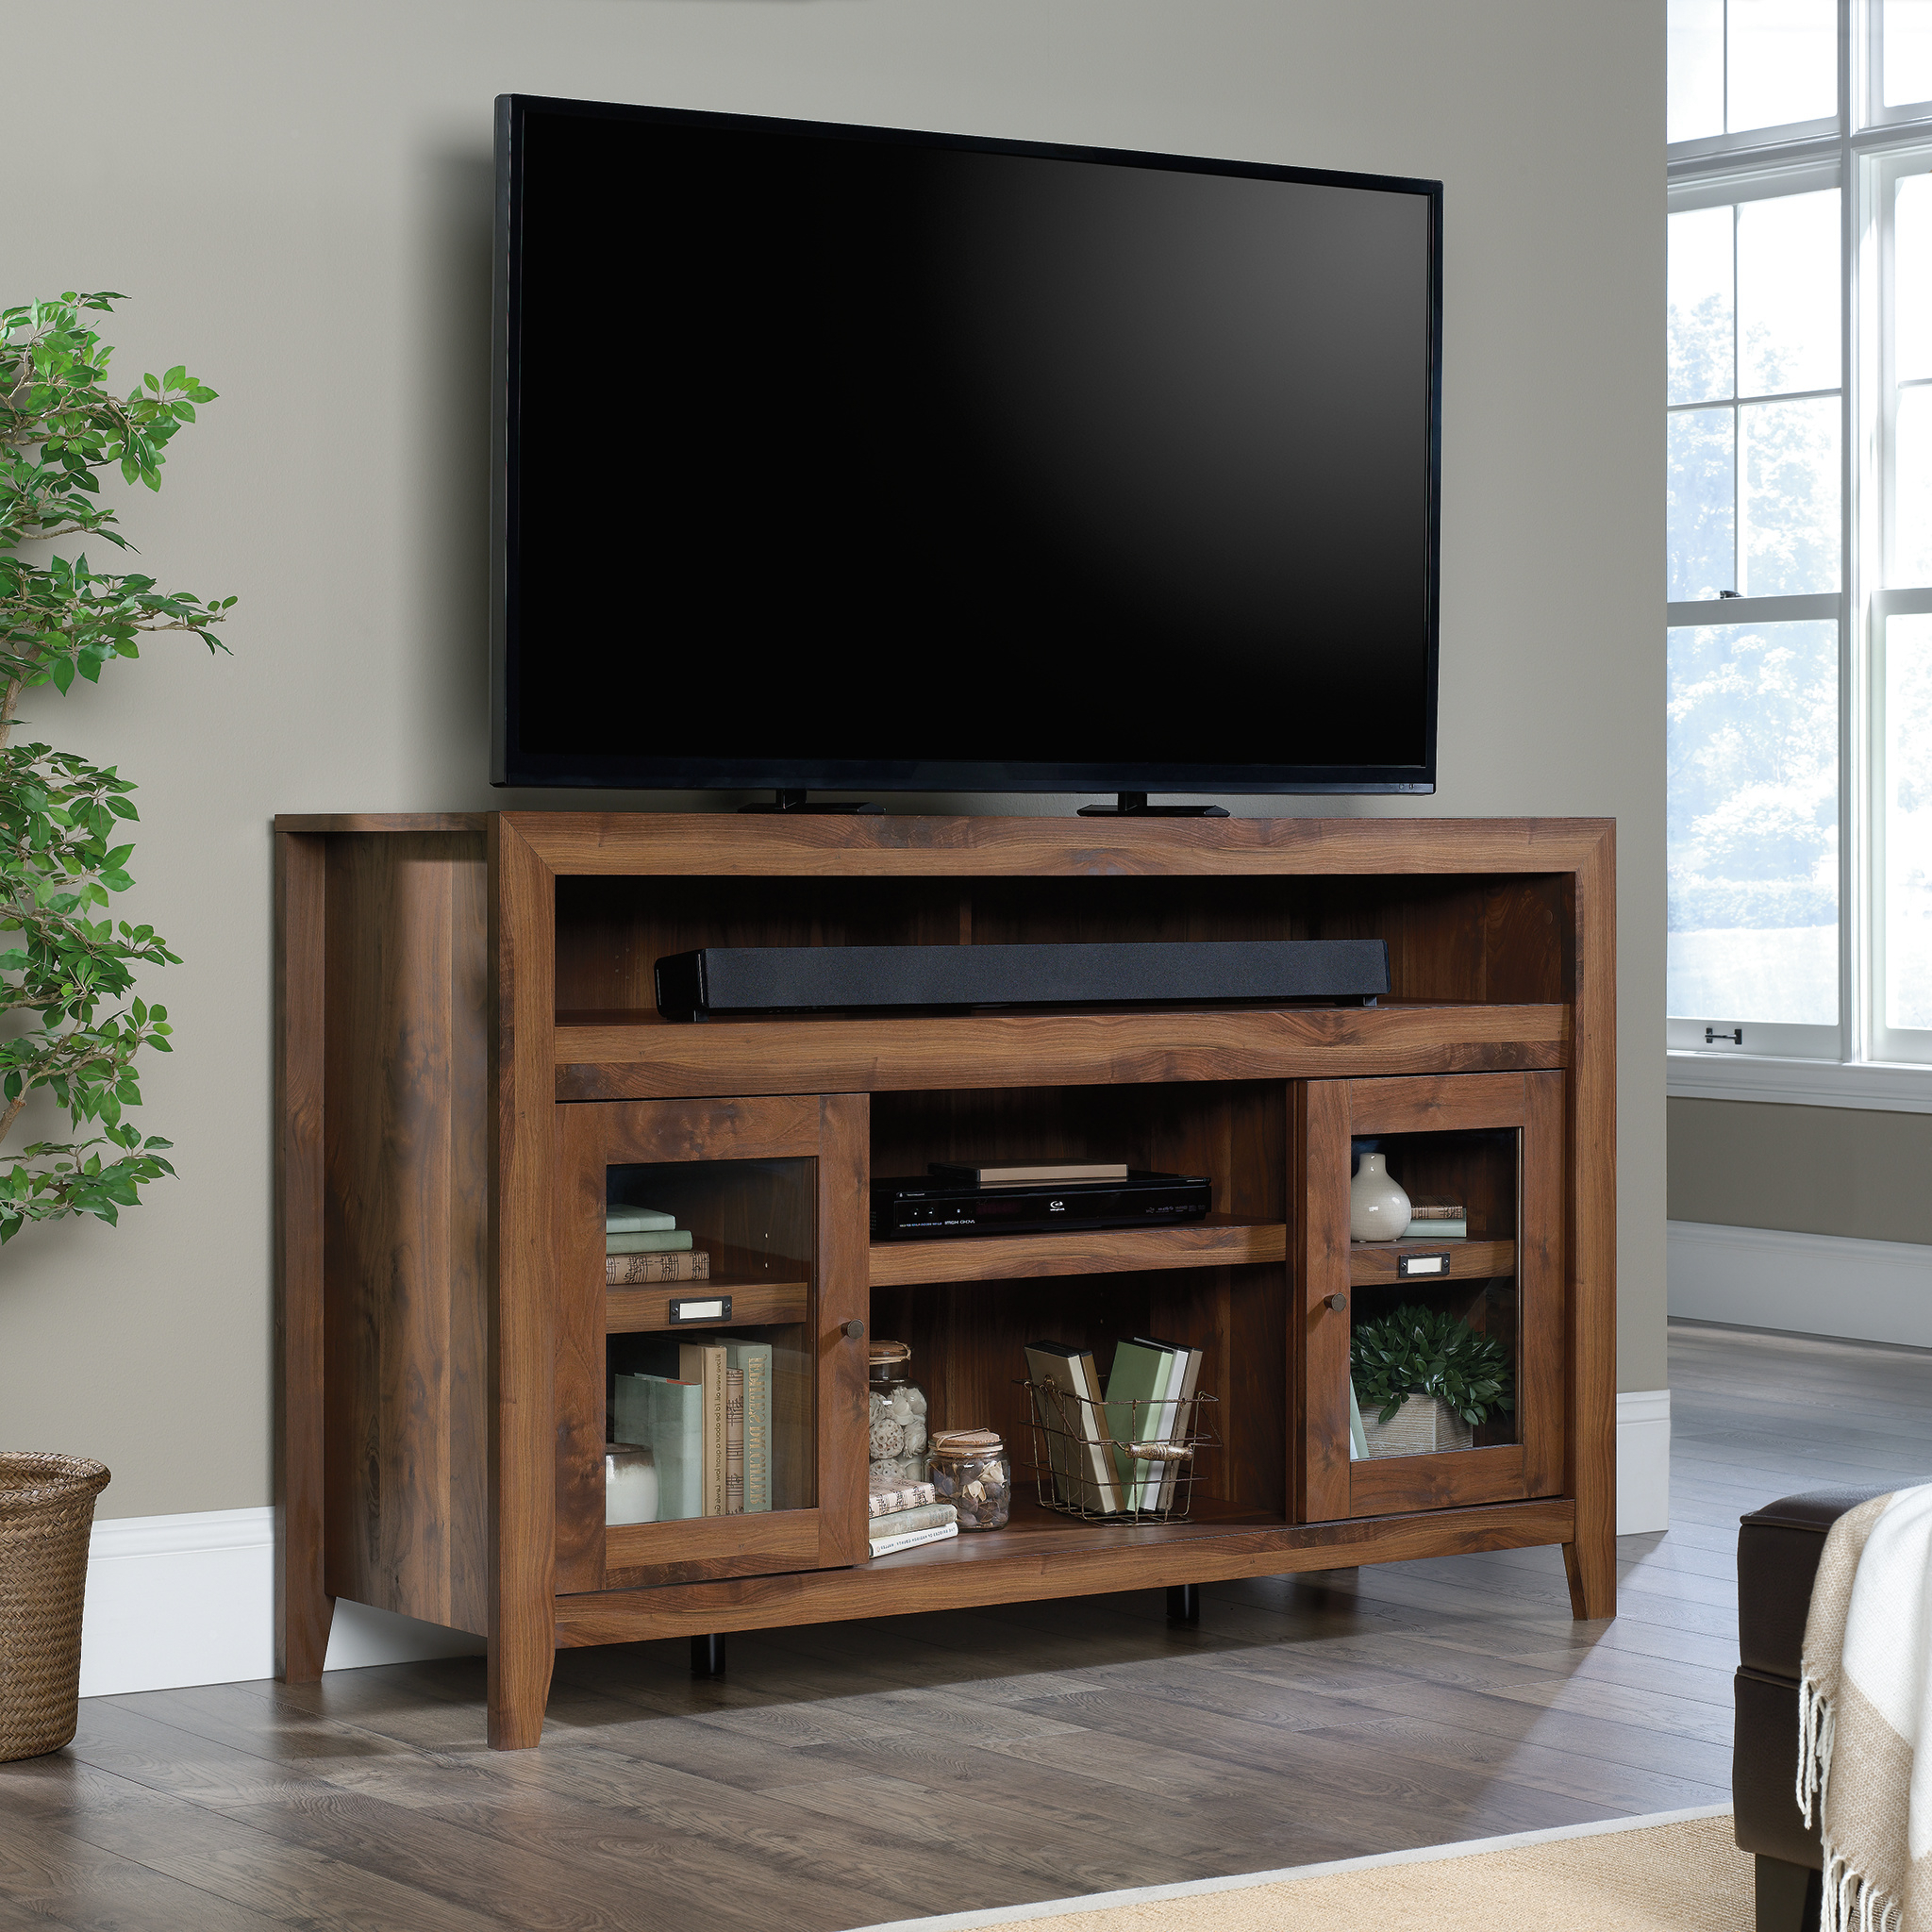 """Sauder Dakota Pass Tv Stand Credenza For Tvs Up To 60 With Regard To Newest Adayah Tv Stands For Tvs Up To 60"""" (View 10 of 25)"""